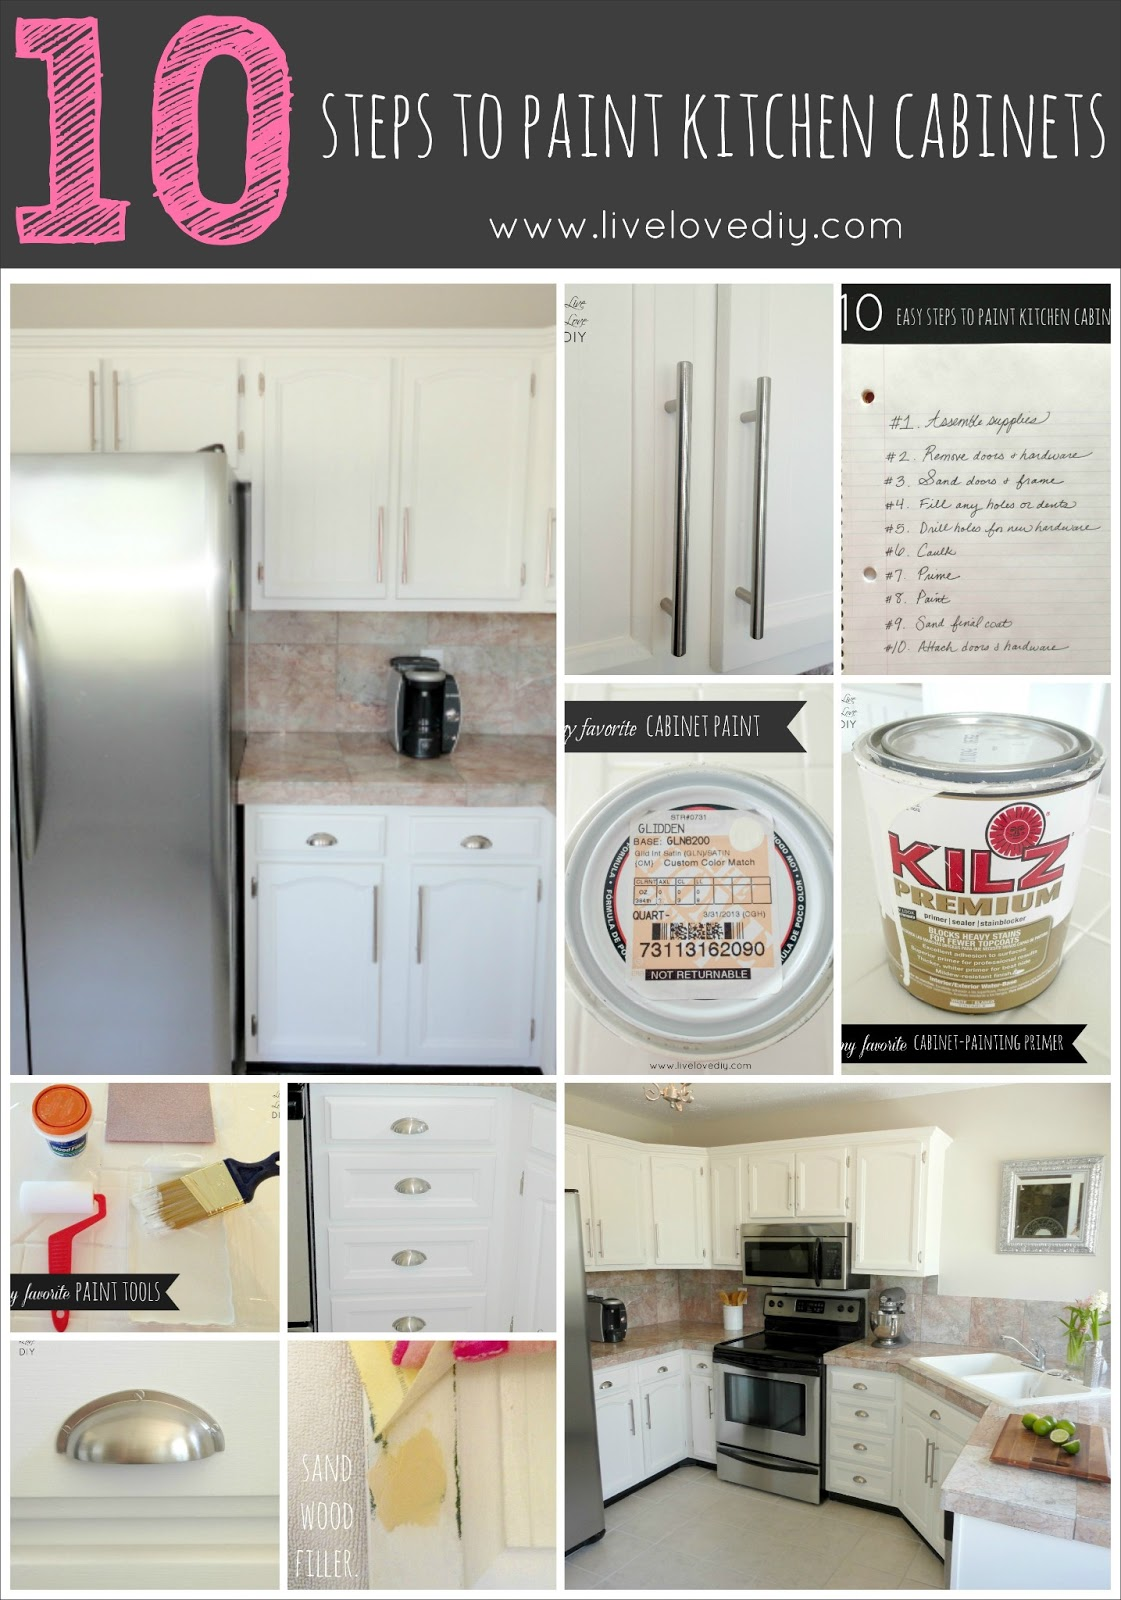 LiveLoveDIY April - What kind of paint for kitchen cabinets